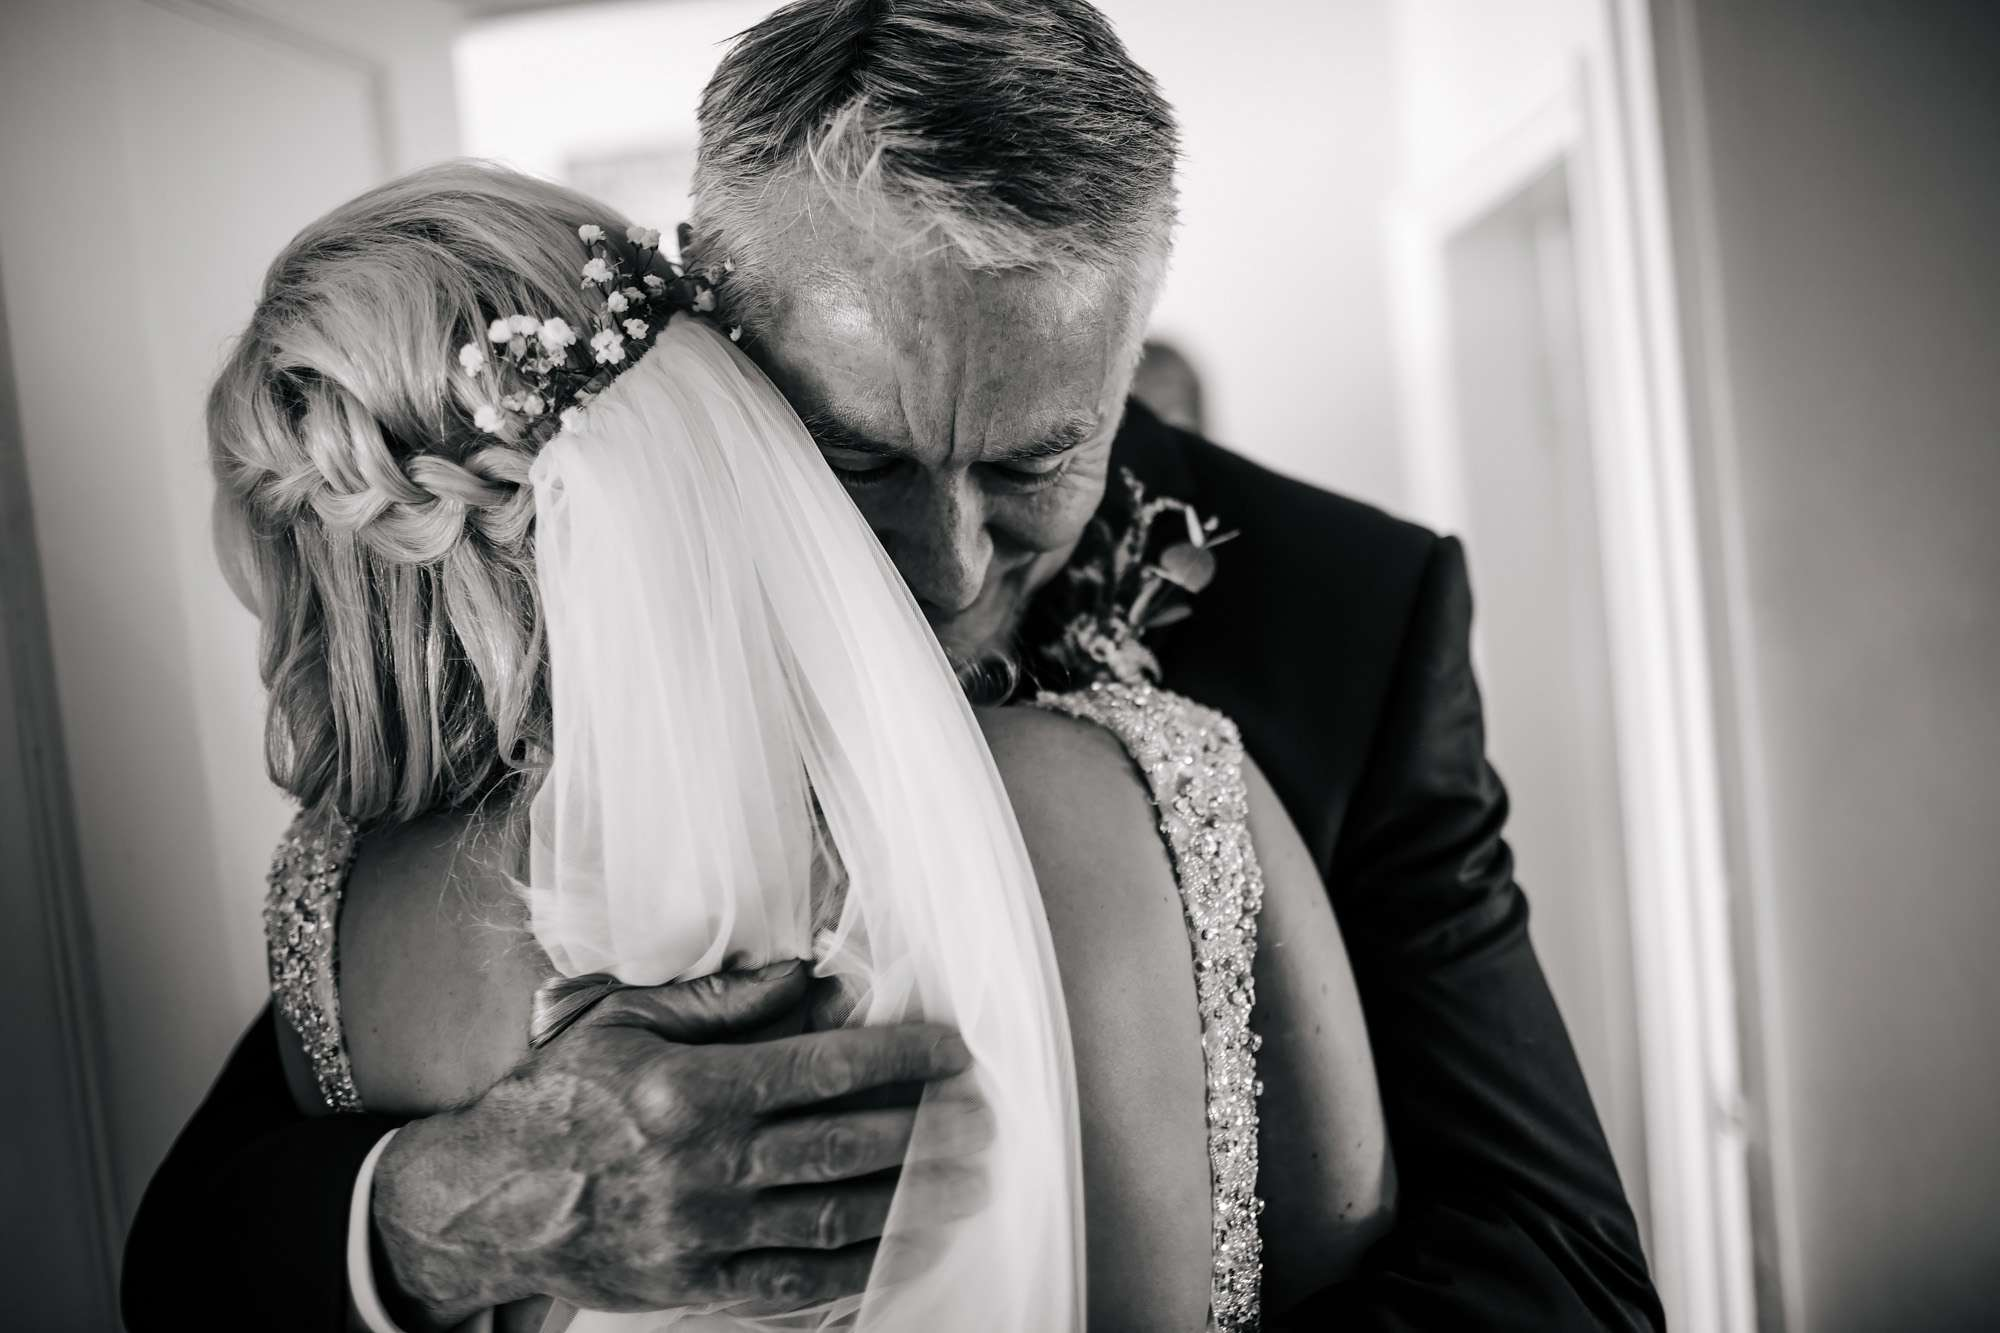 An emotional father and bride hug on her wedding morning in Leeds